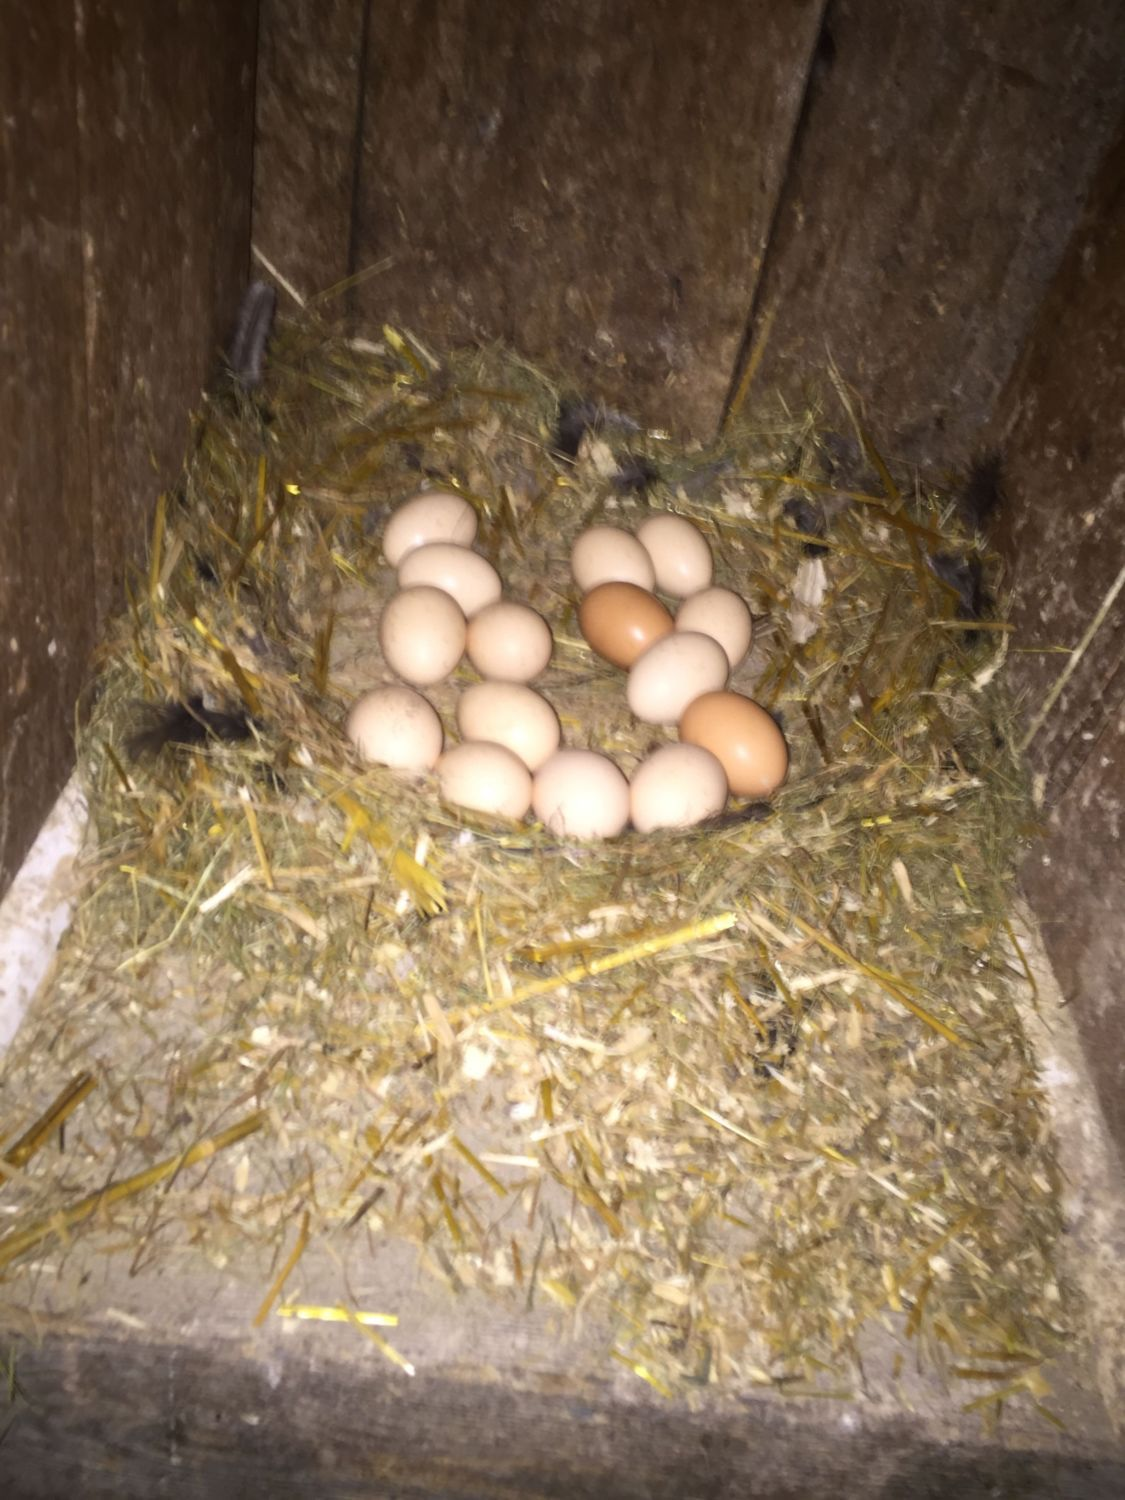 One of the broody hens abandoned her nest at day 19